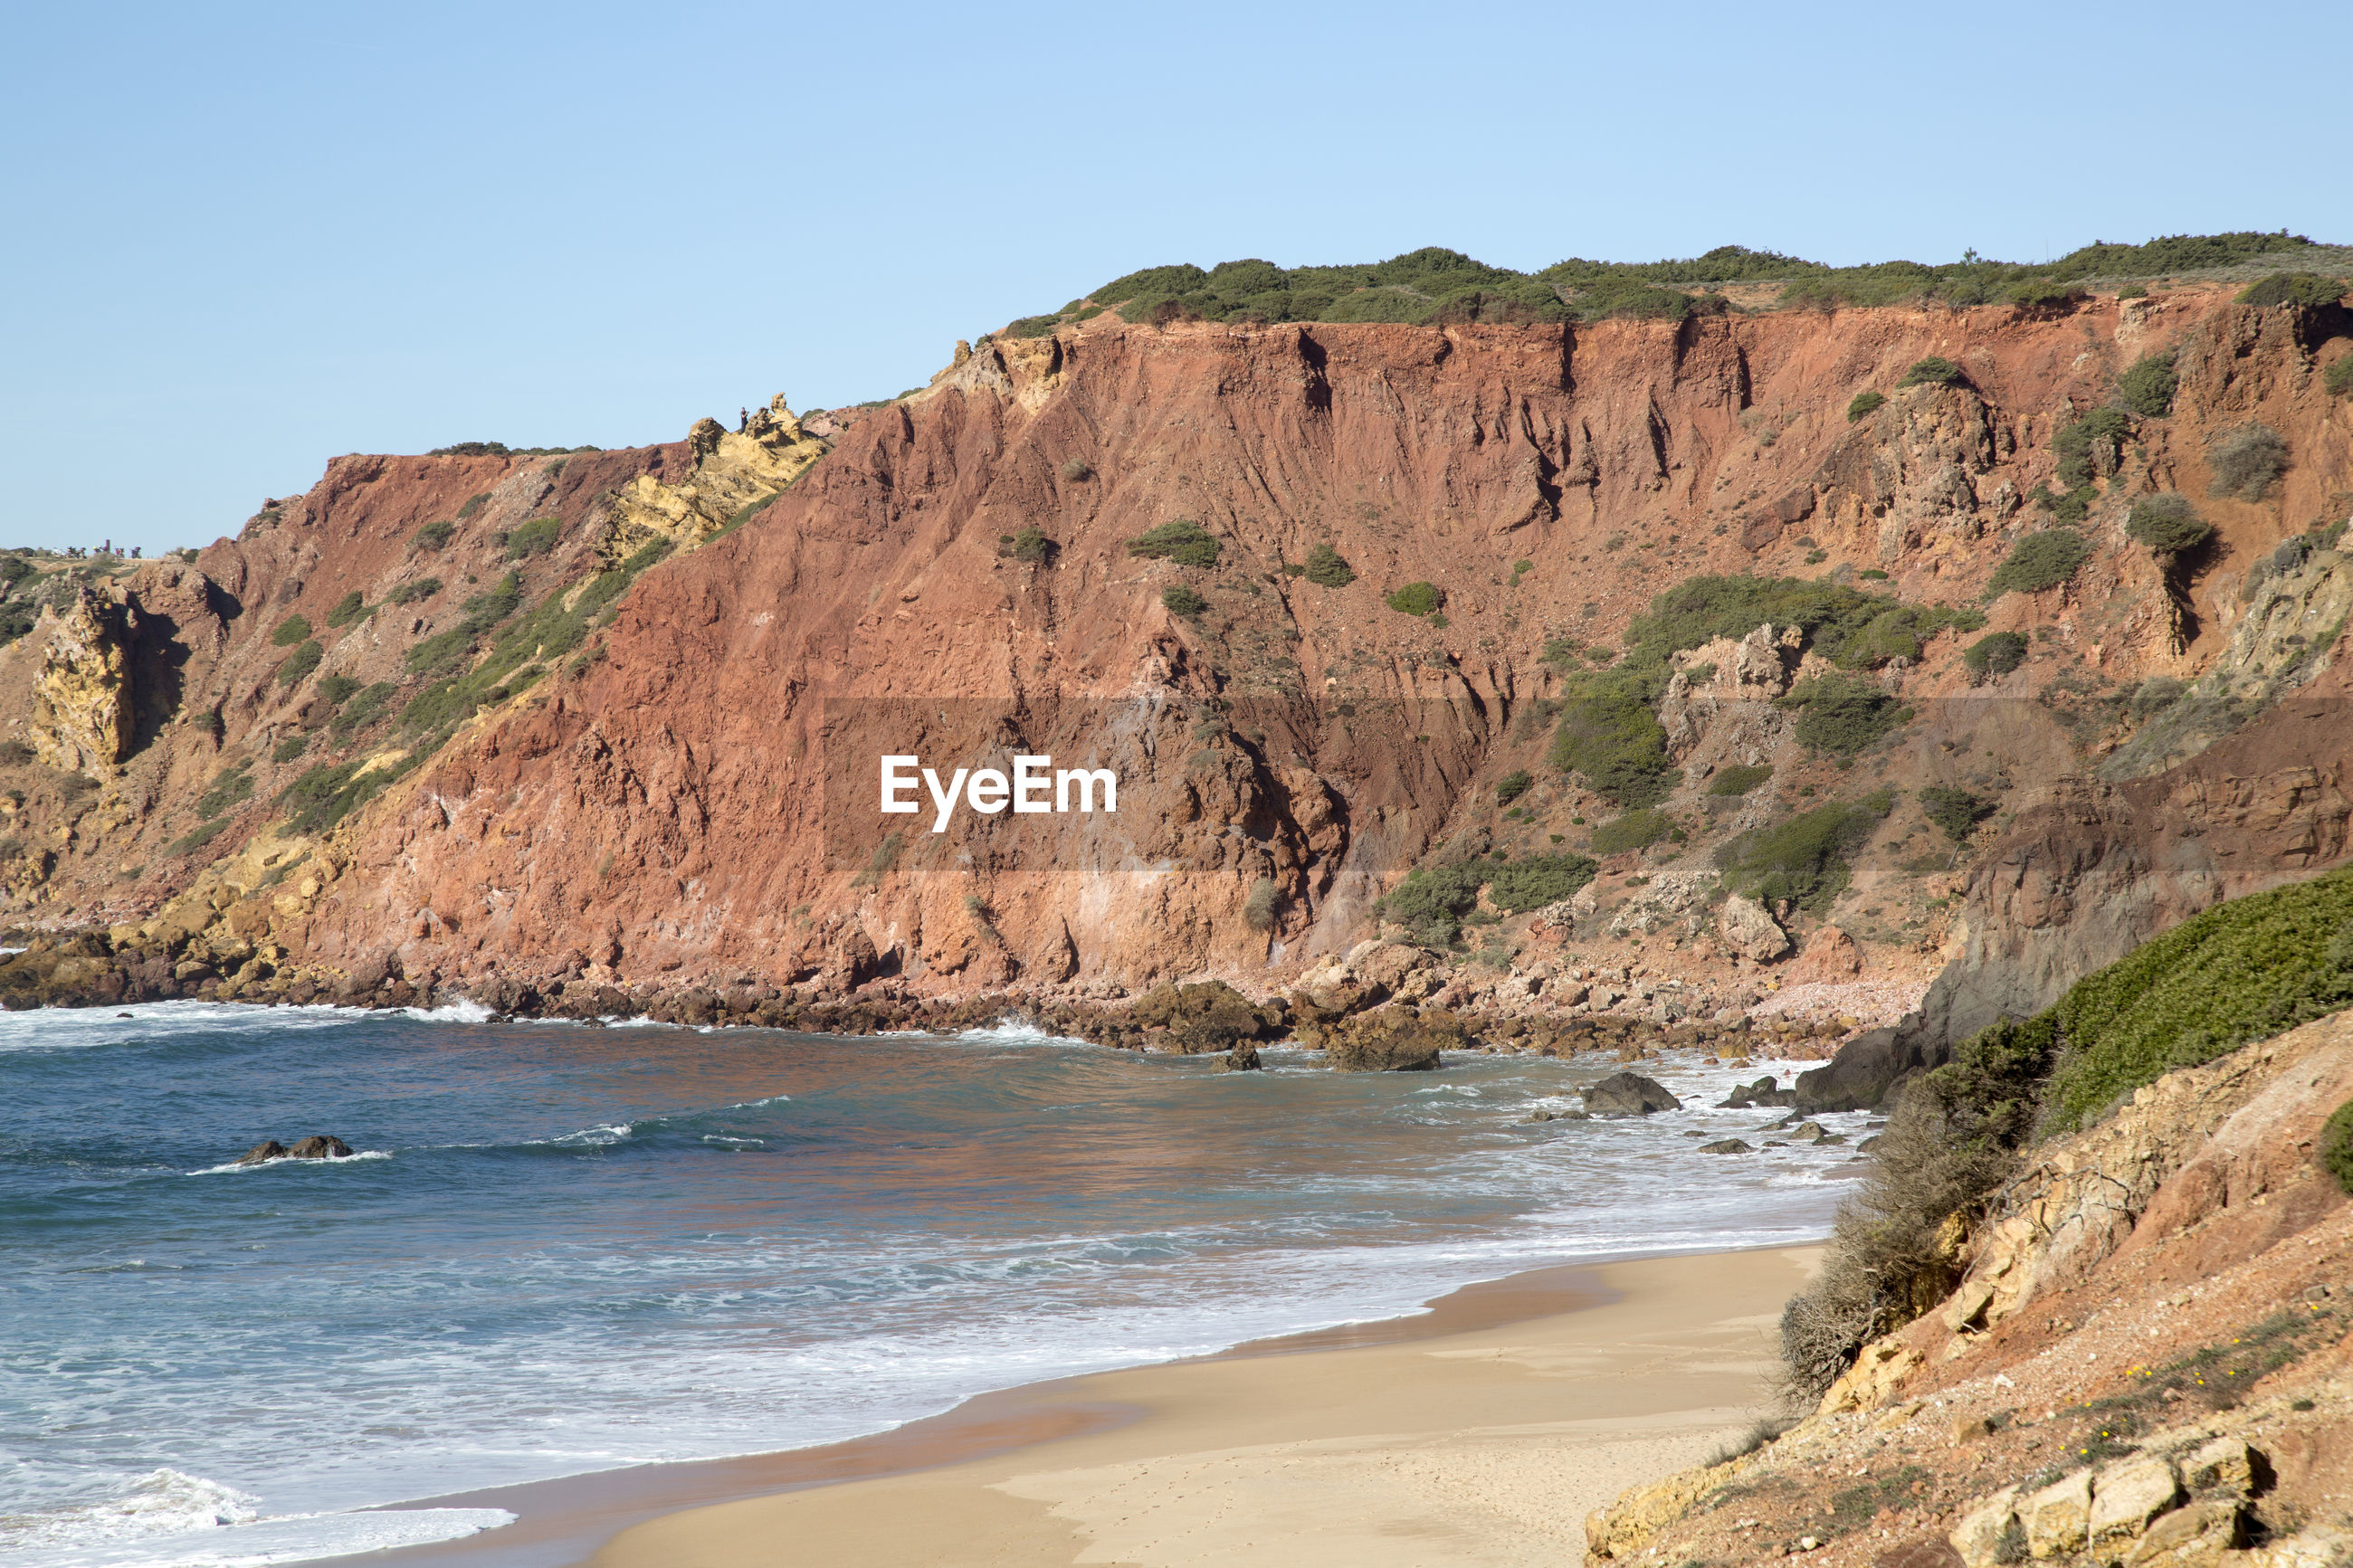 SCENIC VIEW OF ROCKY BEACH AGAINST CLEAR SKY